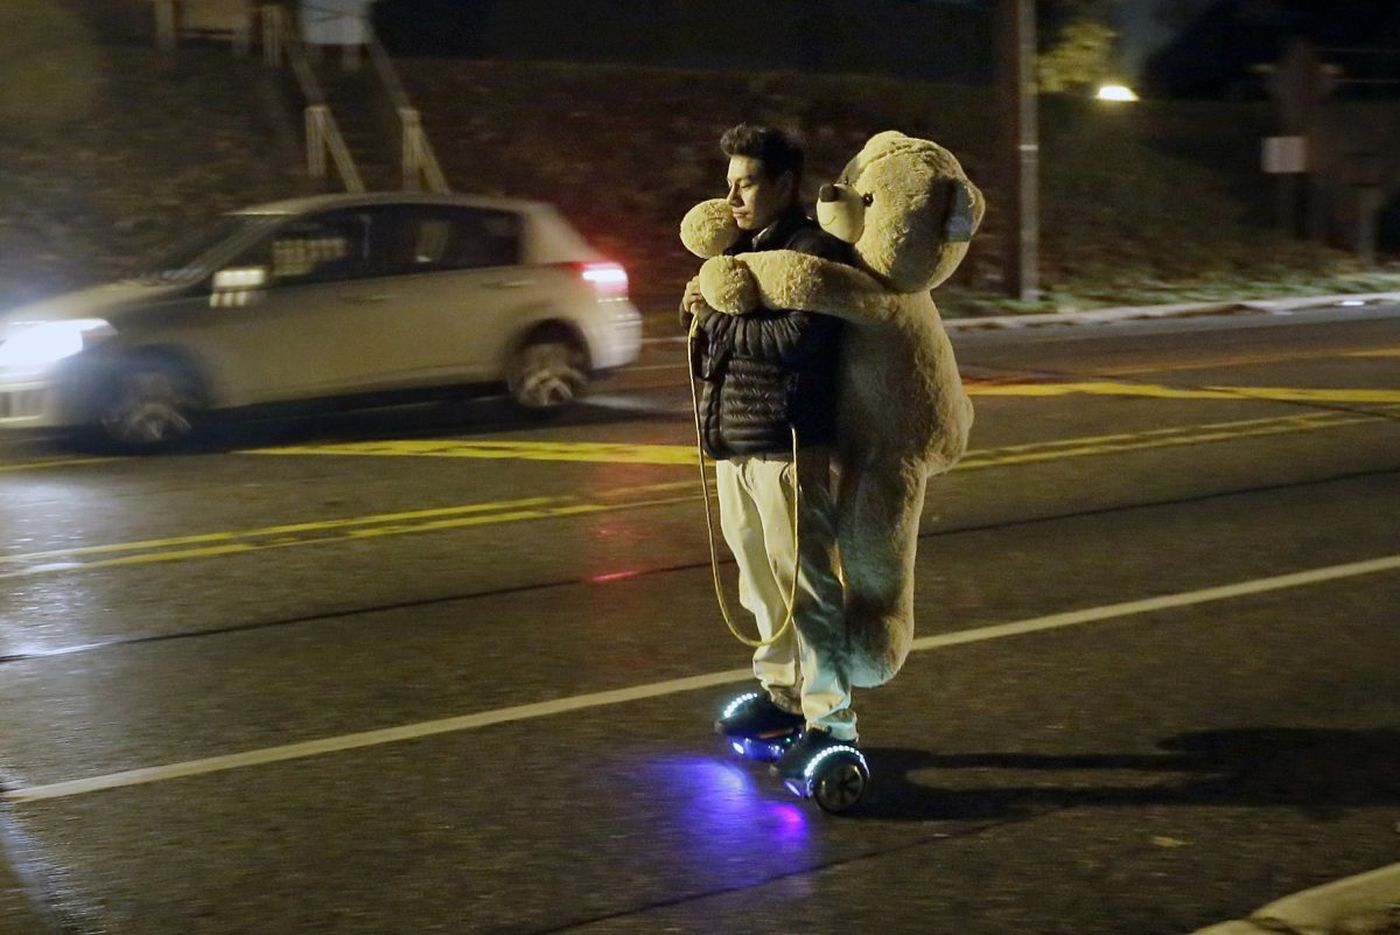 Hoverboards continue to cause injuries